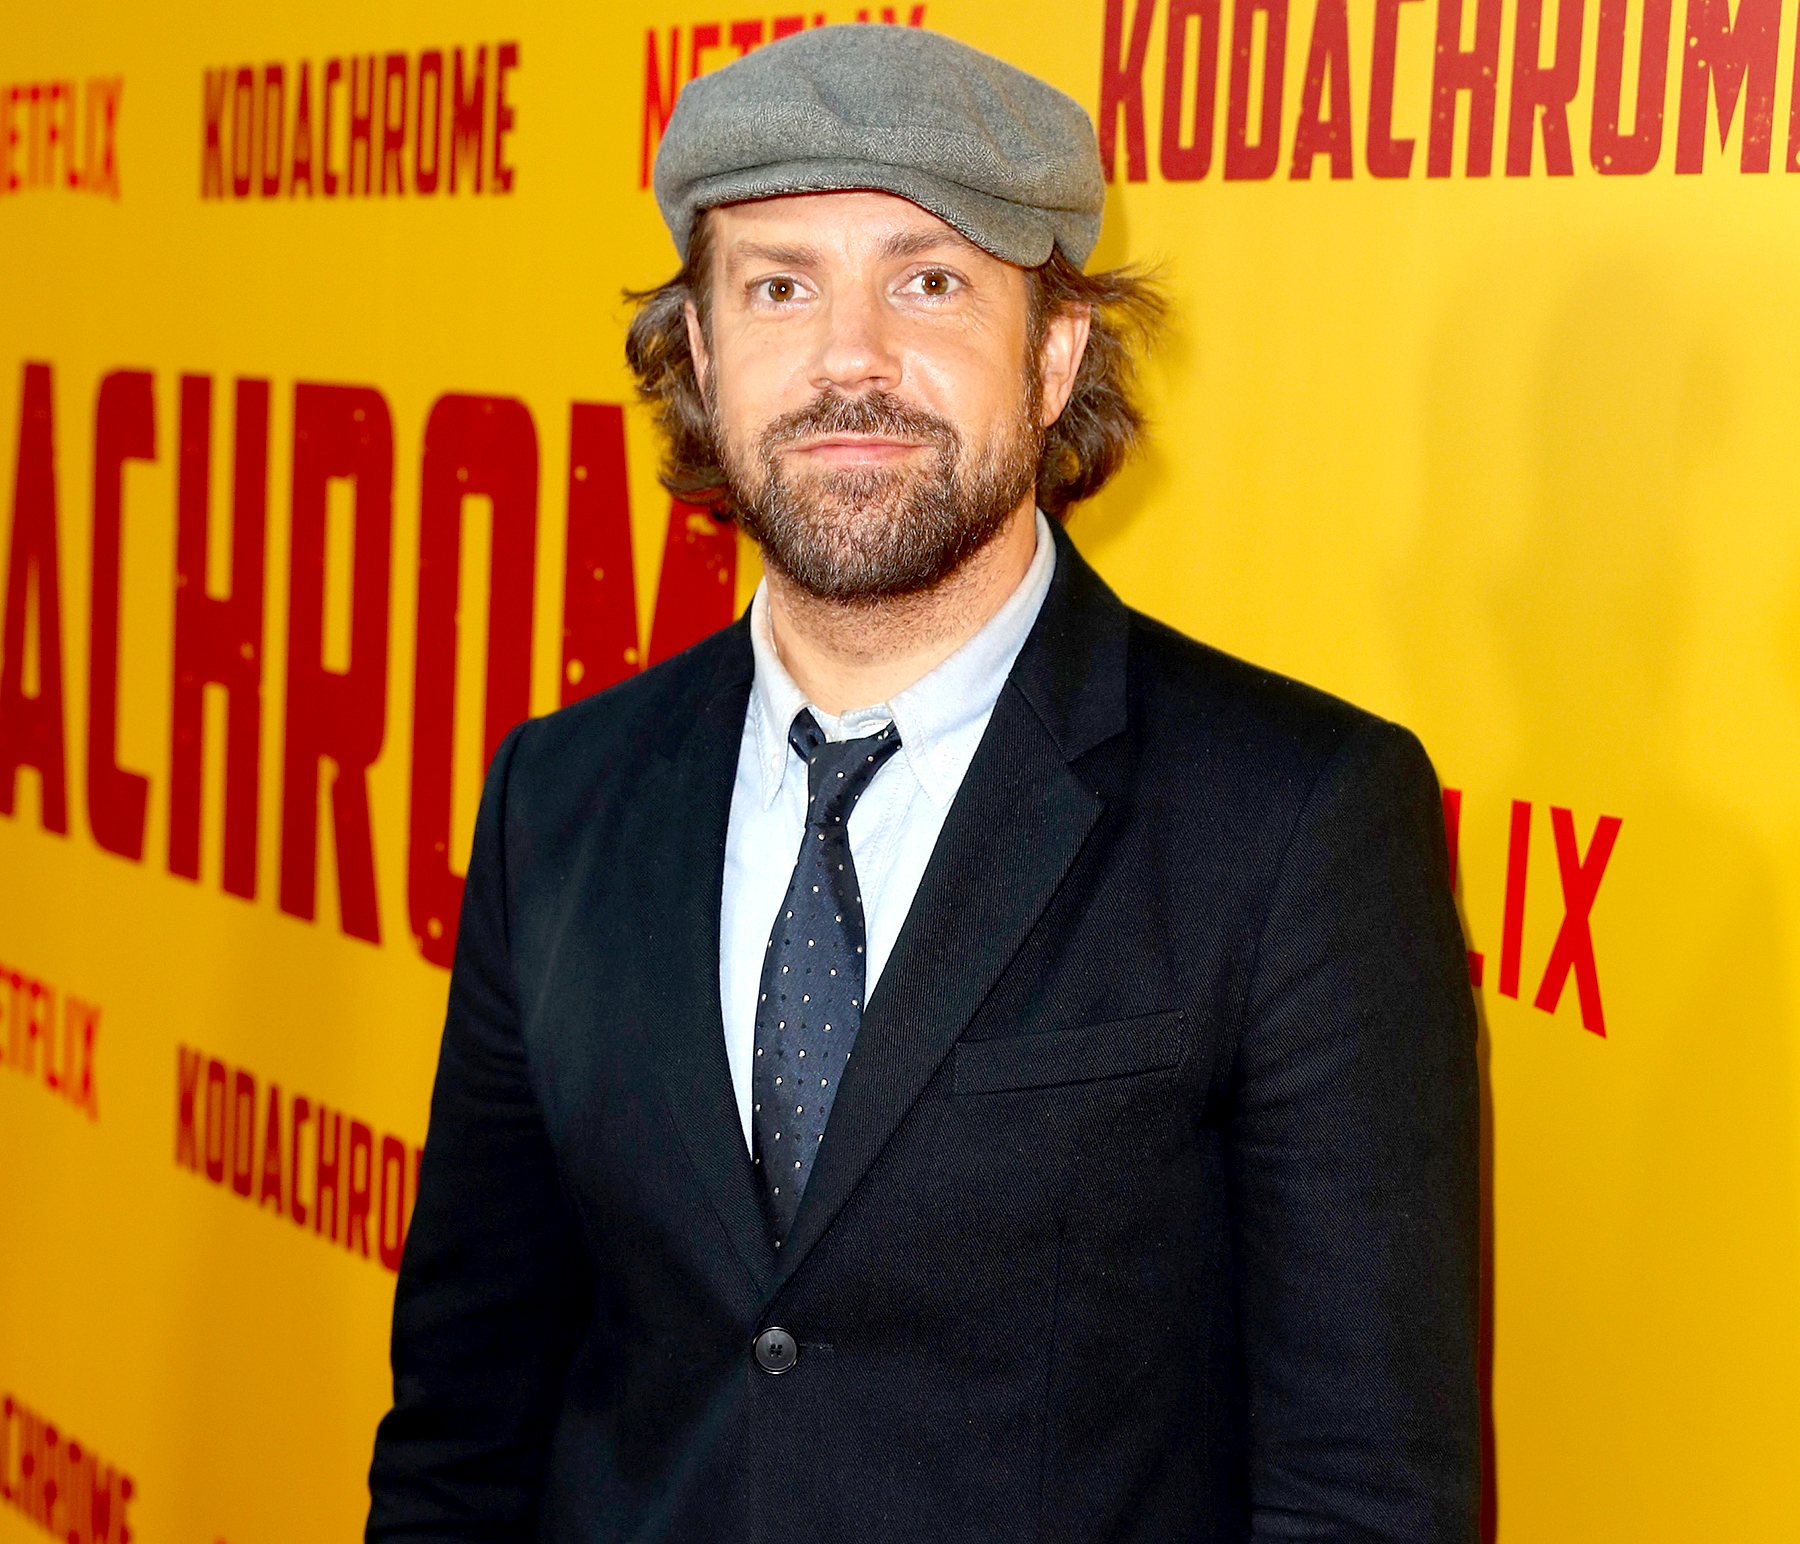 Jason Sudeikis Believes the Key to Being a Good Dad Is  Staying Around  and   Being Present  4b3feb9d1151